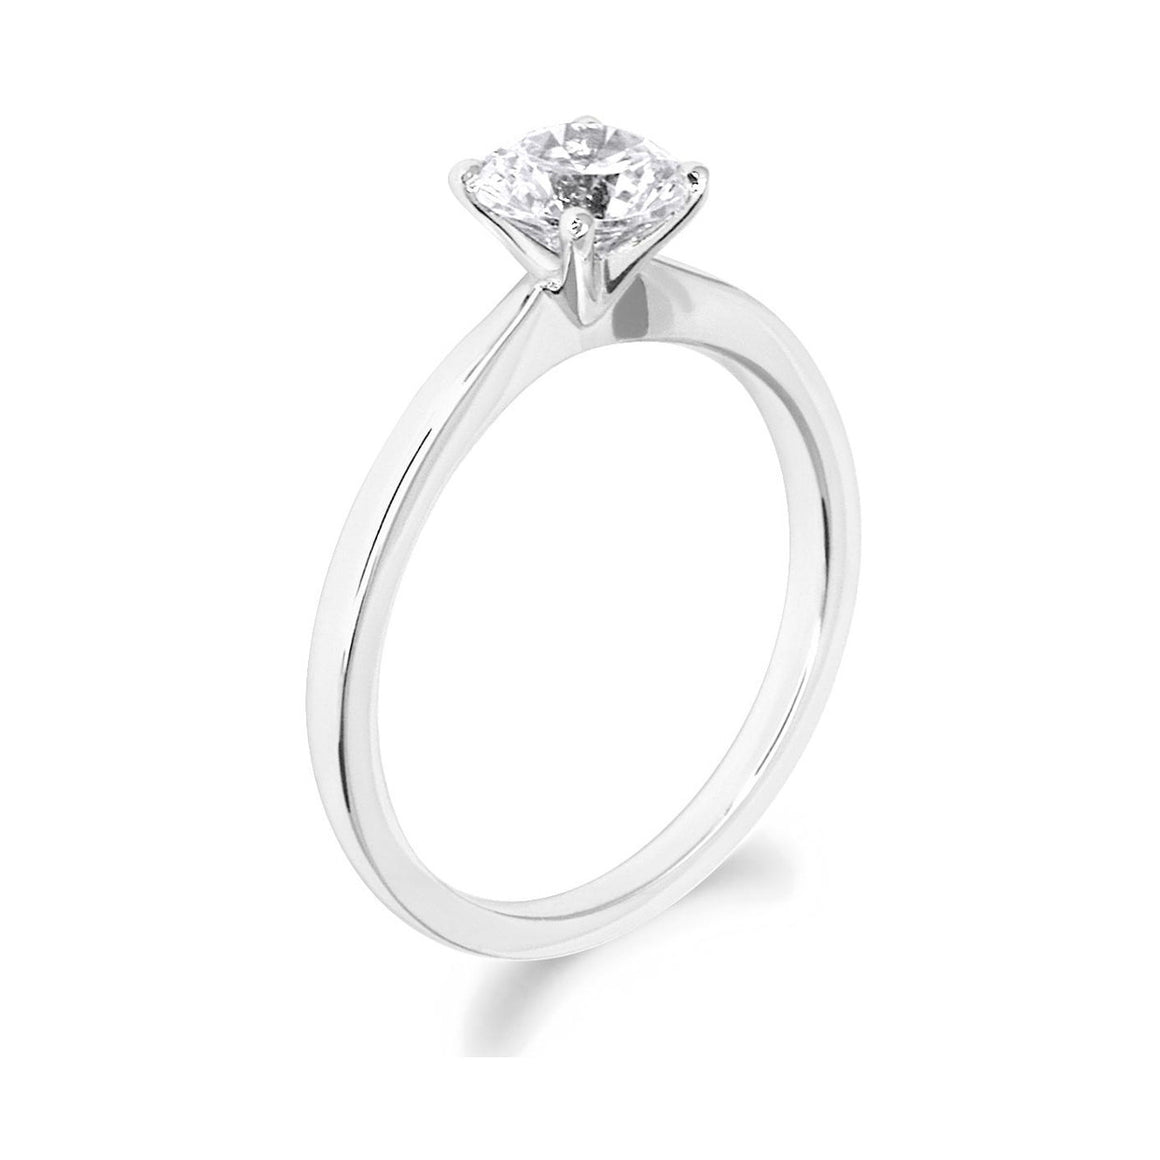 4 Claw Dainty Brilliant Cut 18ct White Gold Solitaire